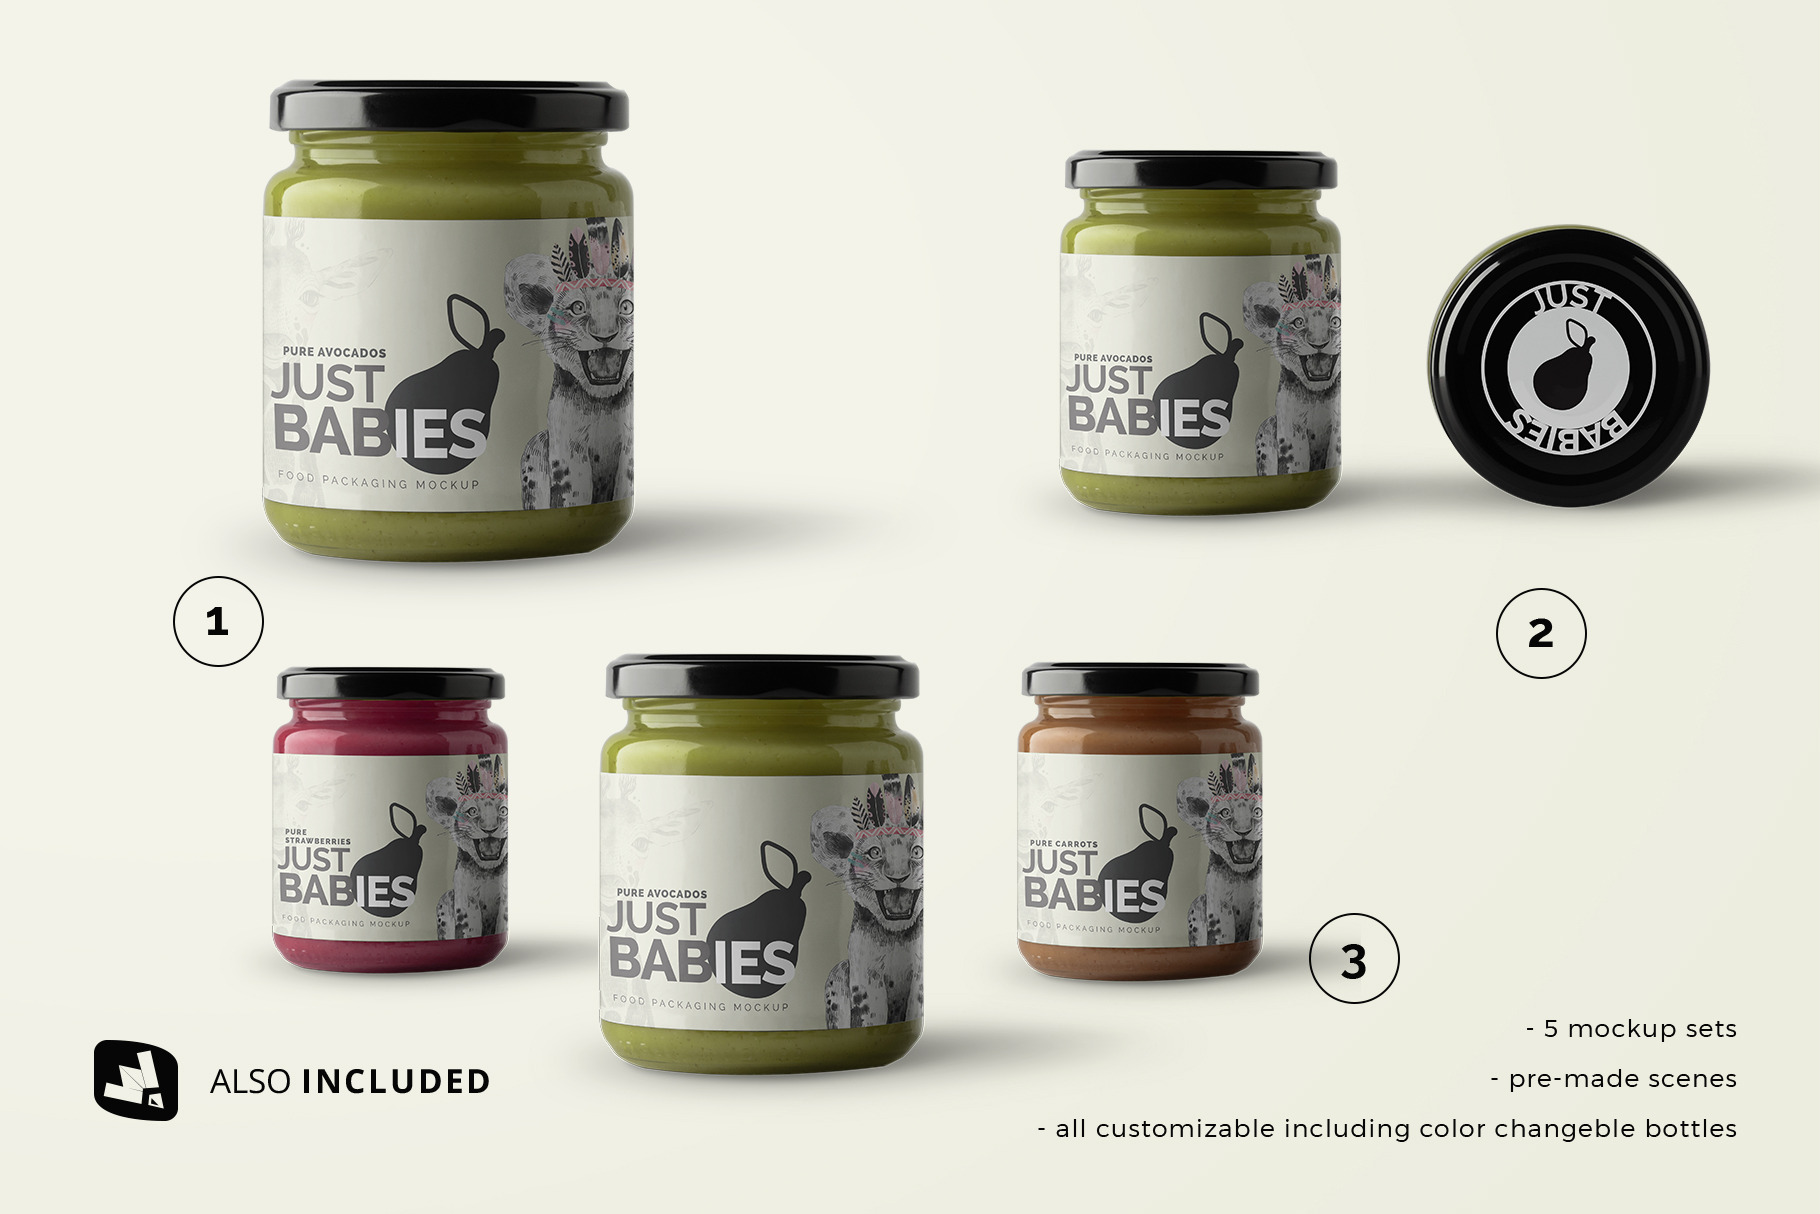 files included in the organic baby food packaging mockup